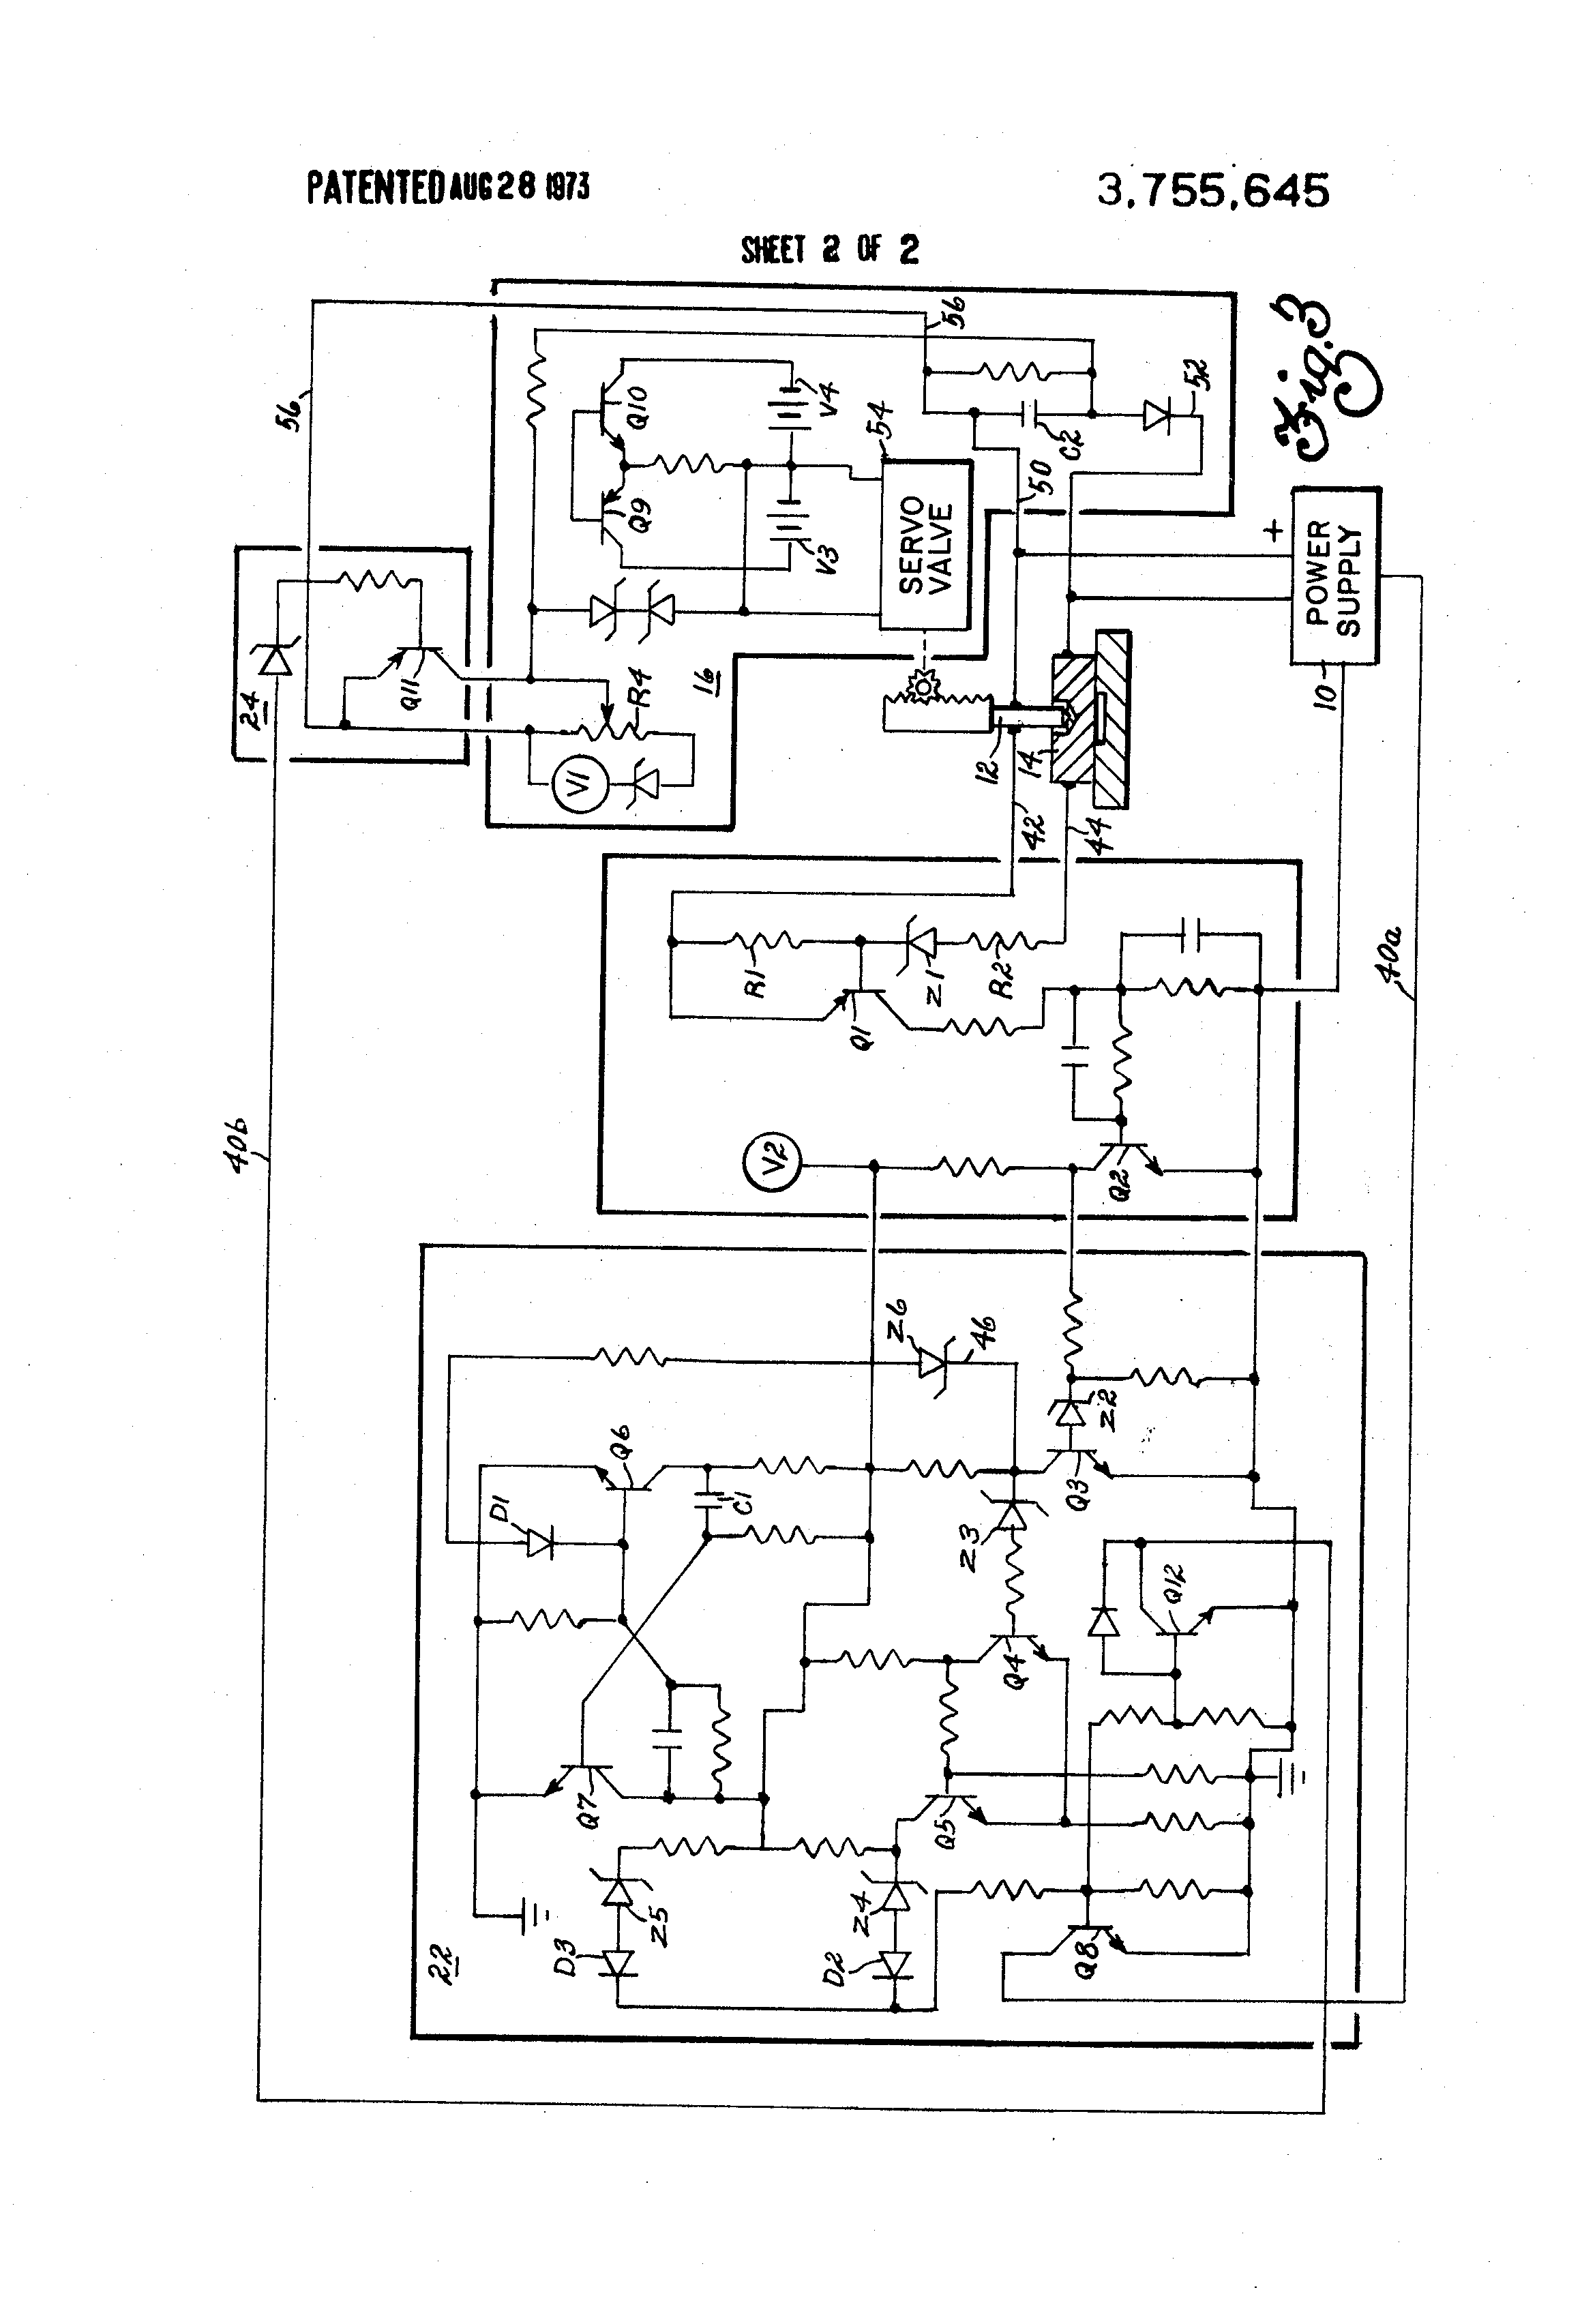 Roto Phase Wiring Diagram : Wiring diagram for roto phase converter